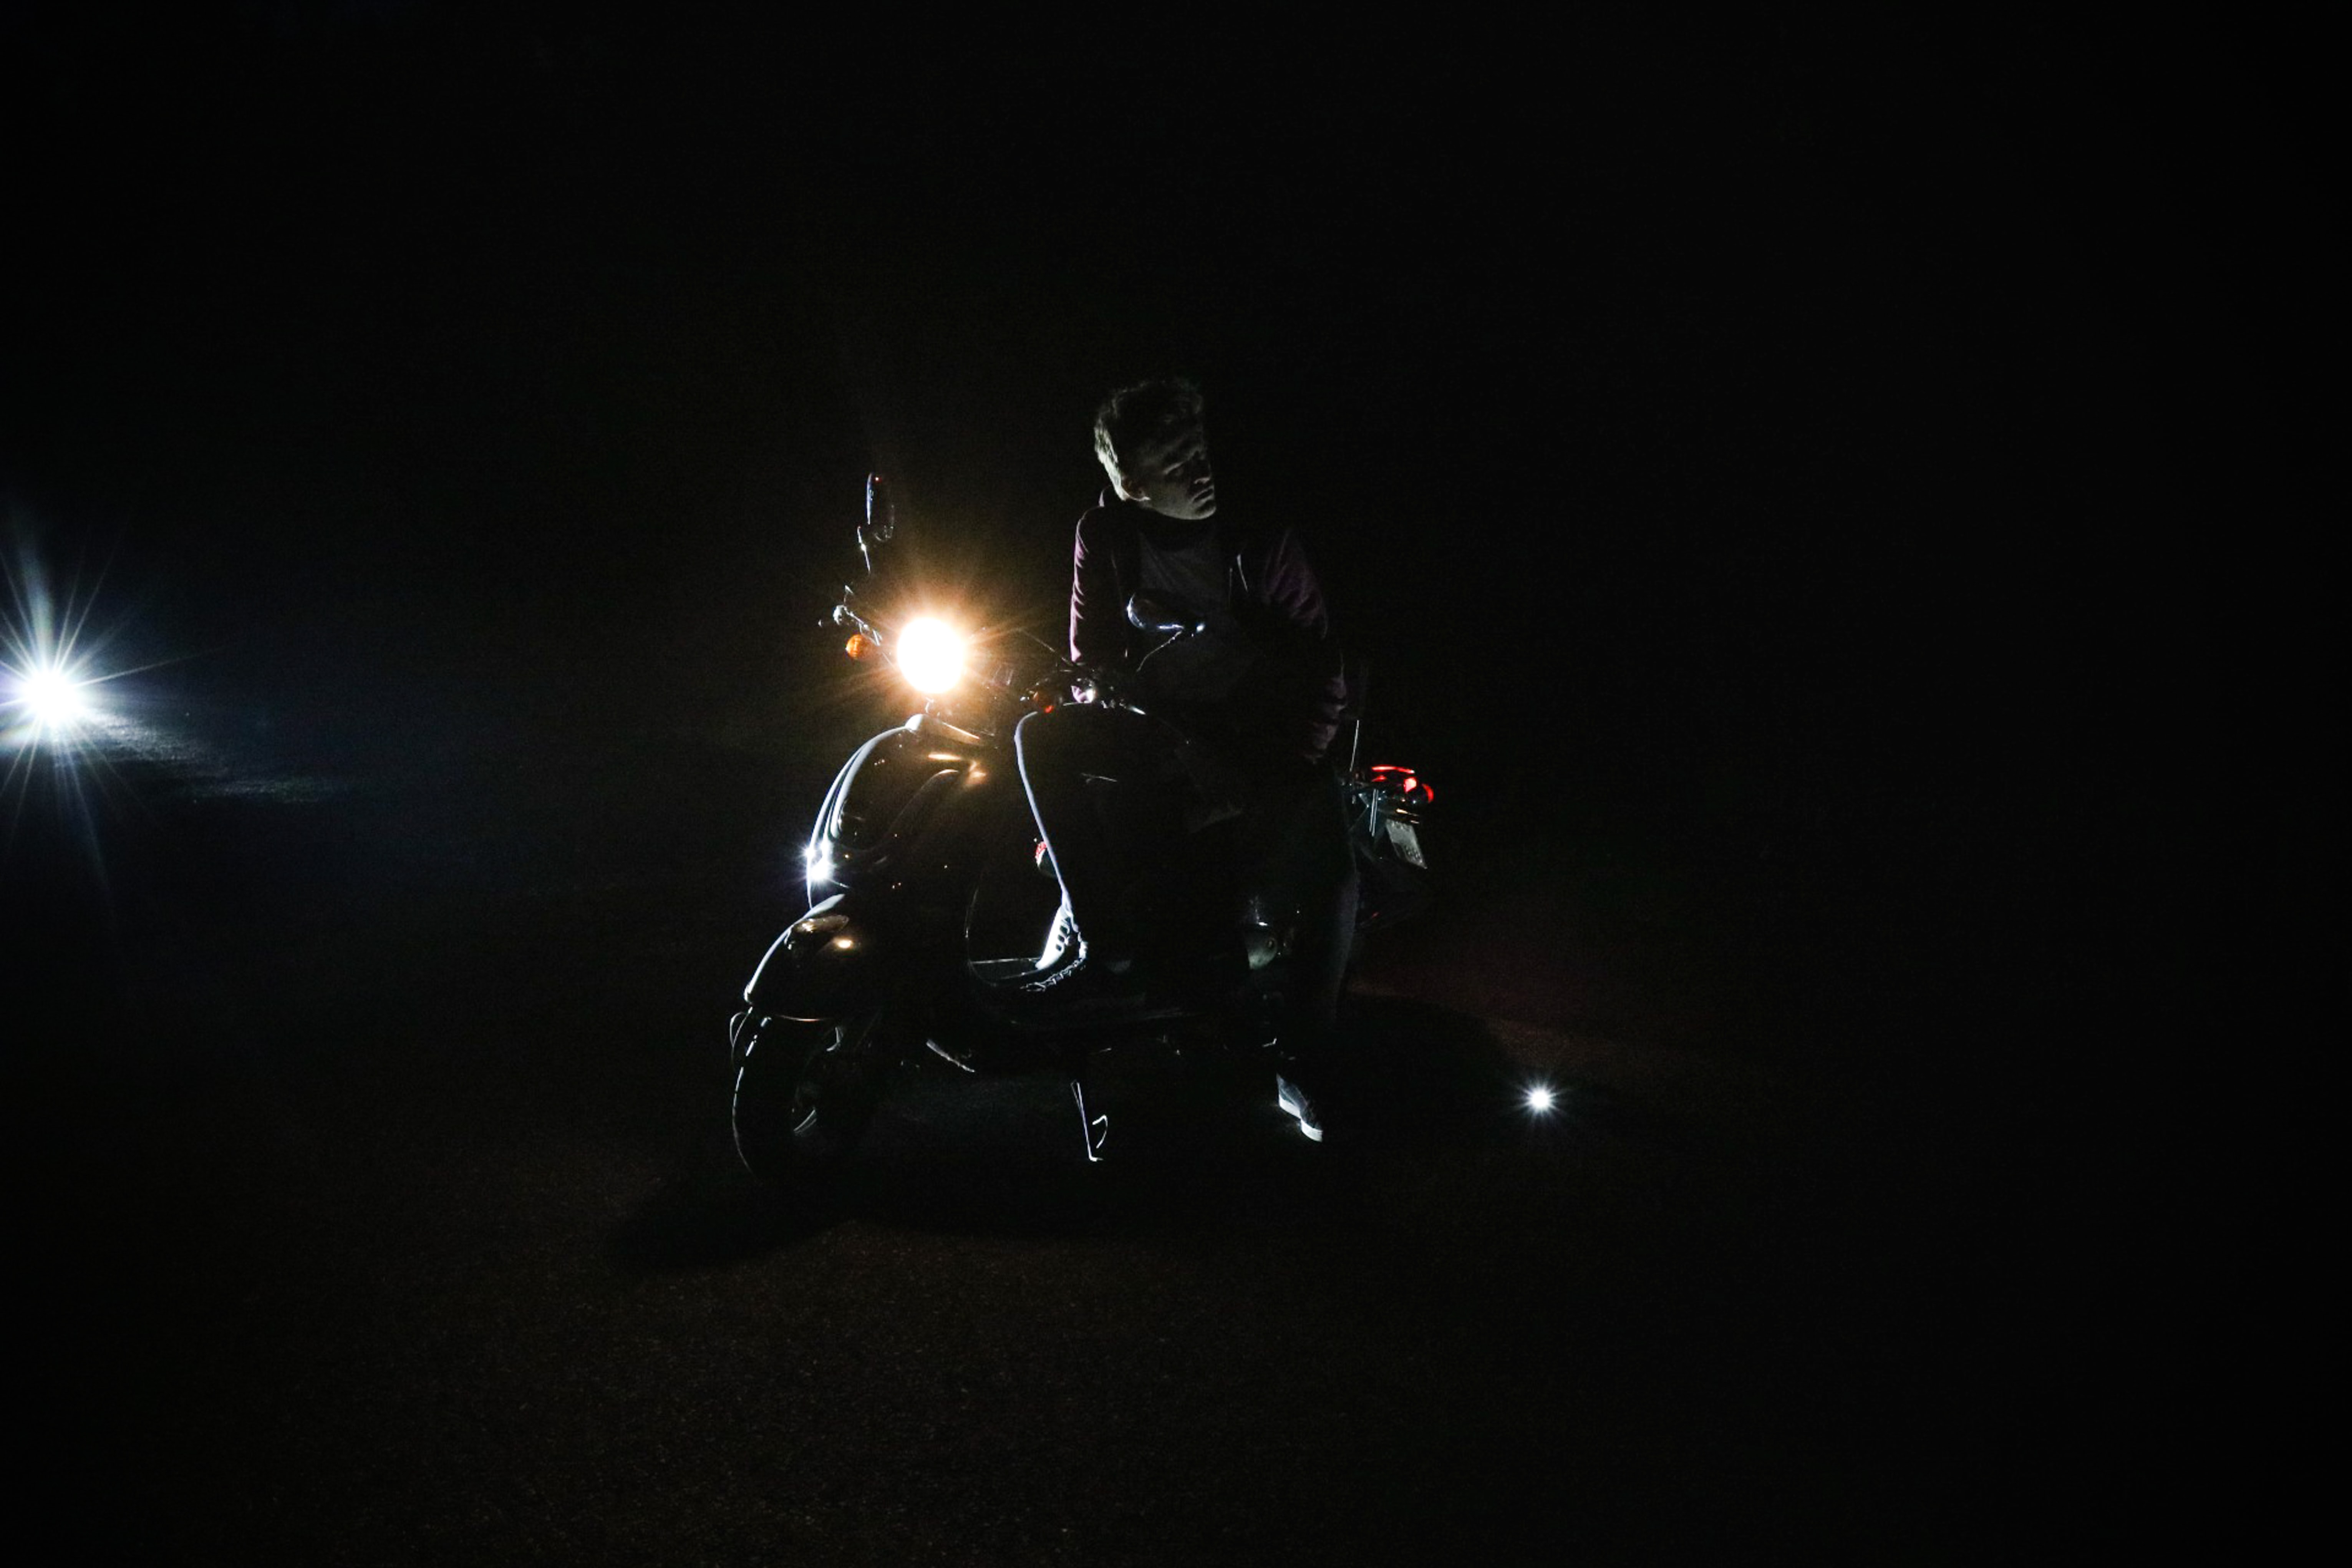 person sitting on motorcycle